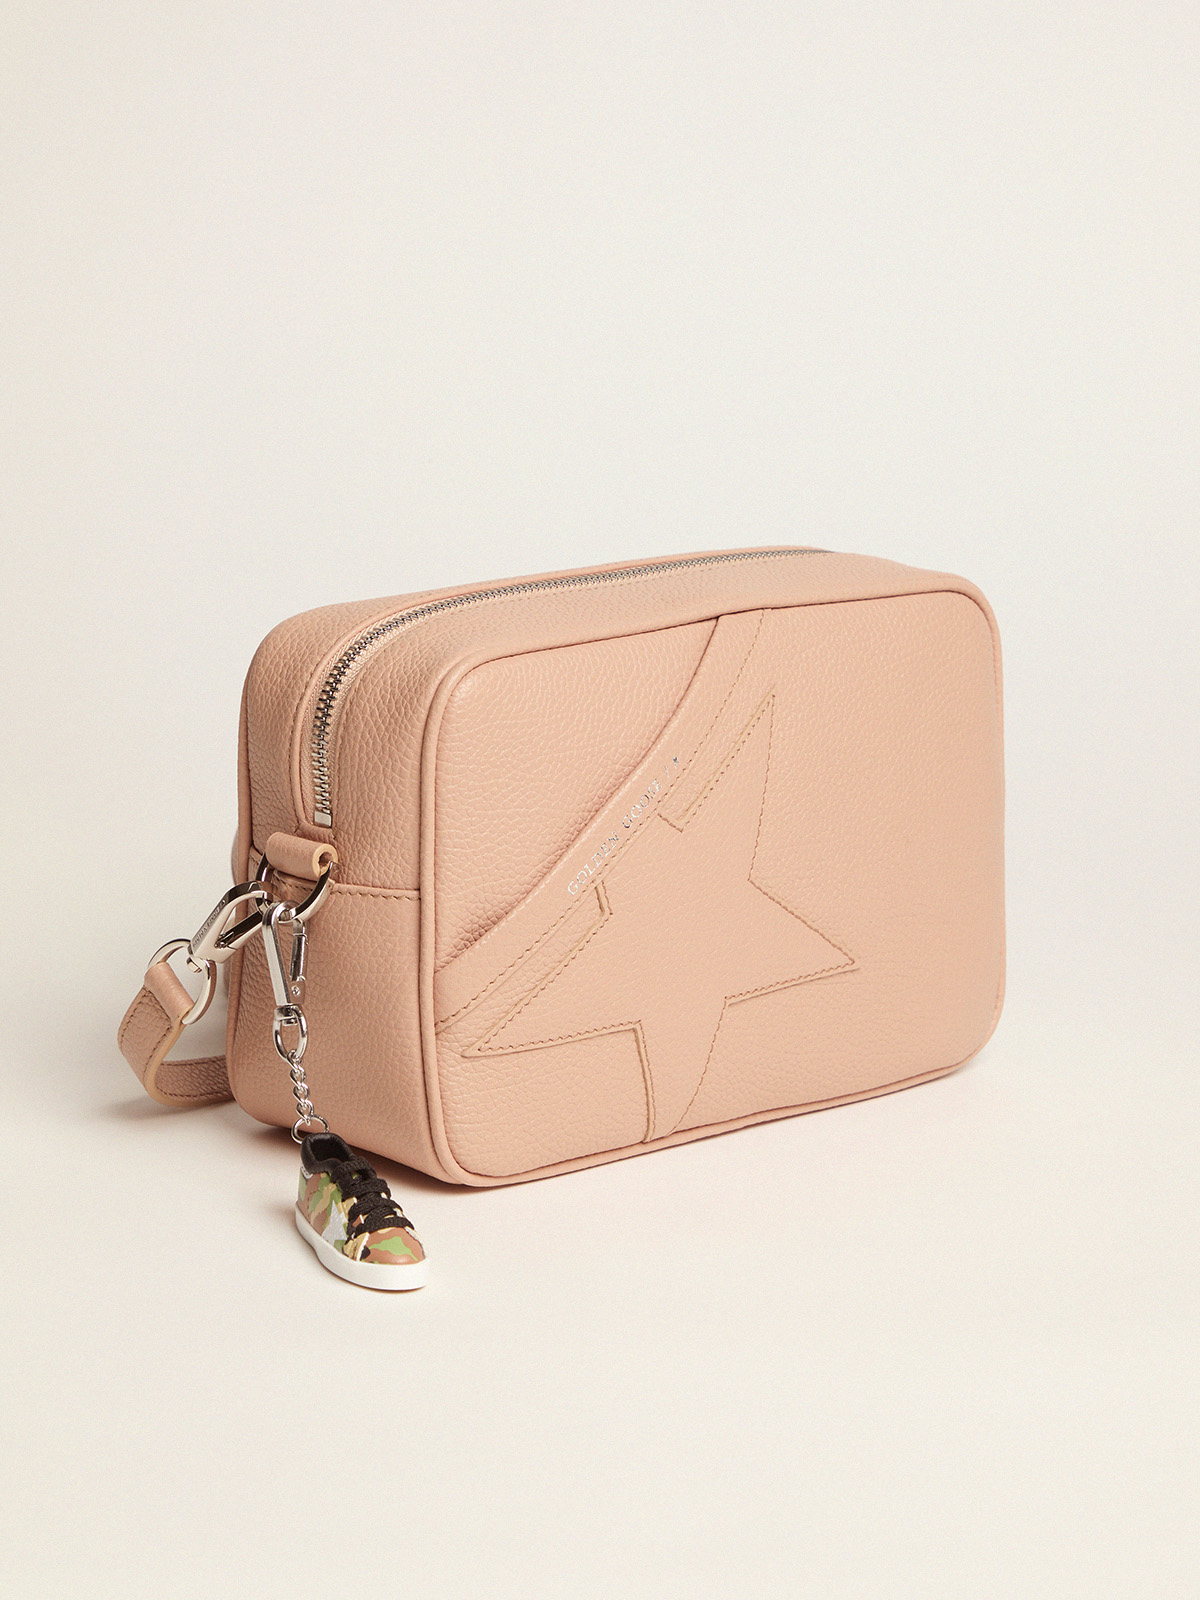 Golden Goose - Nude Star Bag made of hammered leather in